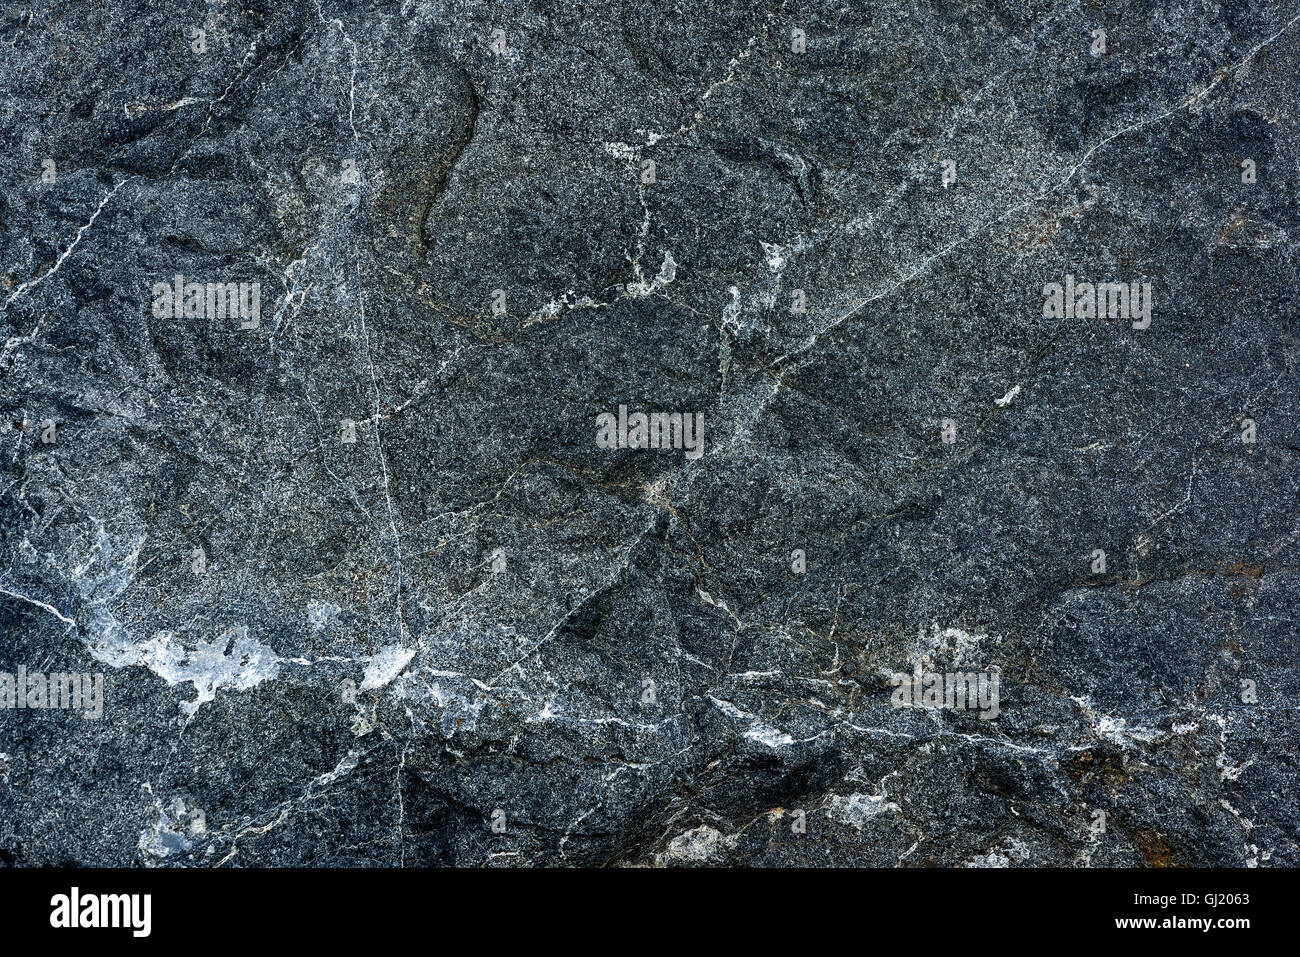 Pattern and texture in close up of fine grained igneous rock with quartz intrusions - Stock Image